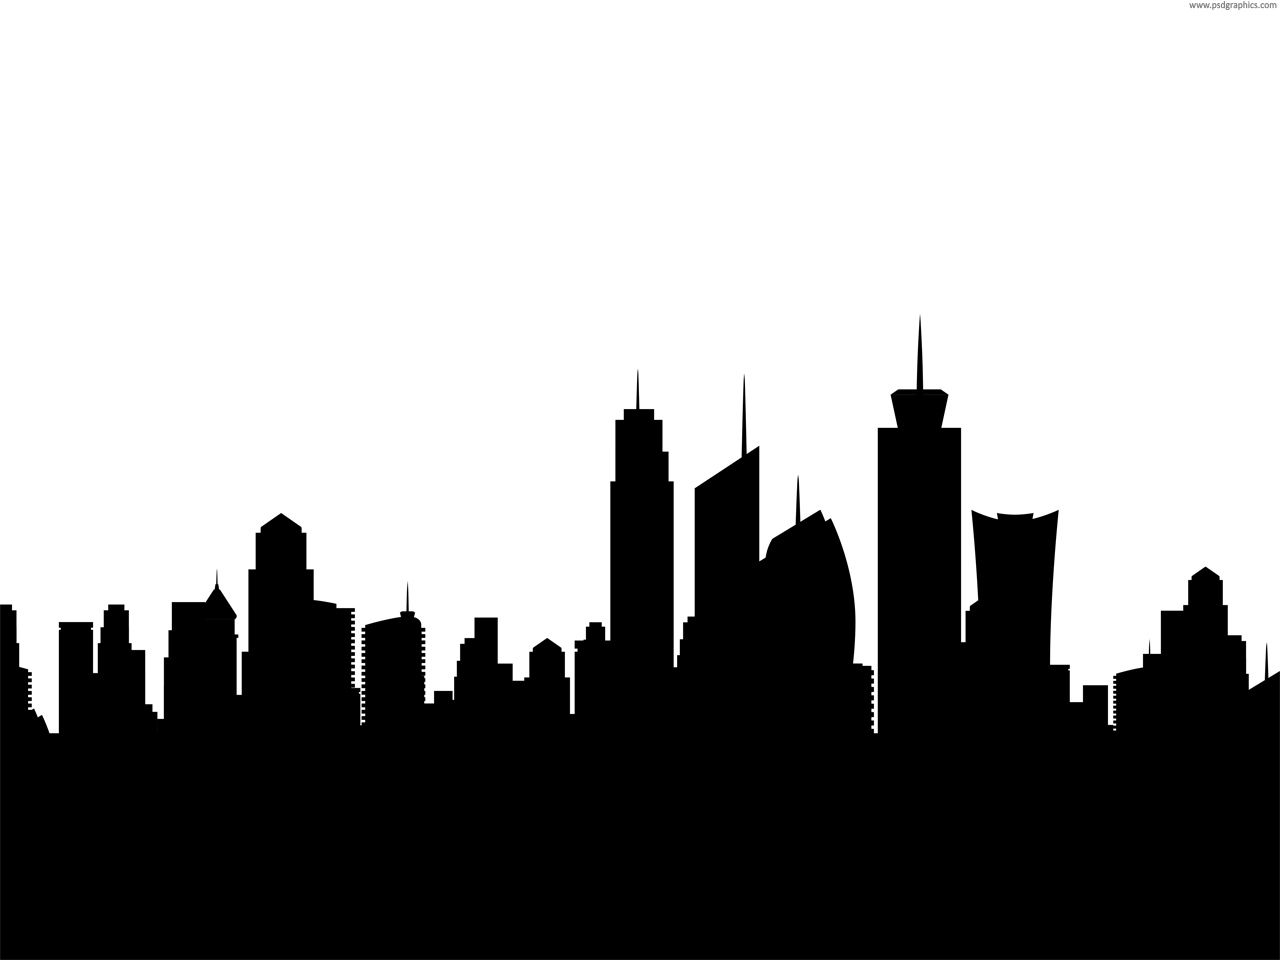 city skyline silhouette clip art at getdrawings com free for rh getdrawings com clip art city skyline clipart city skyline